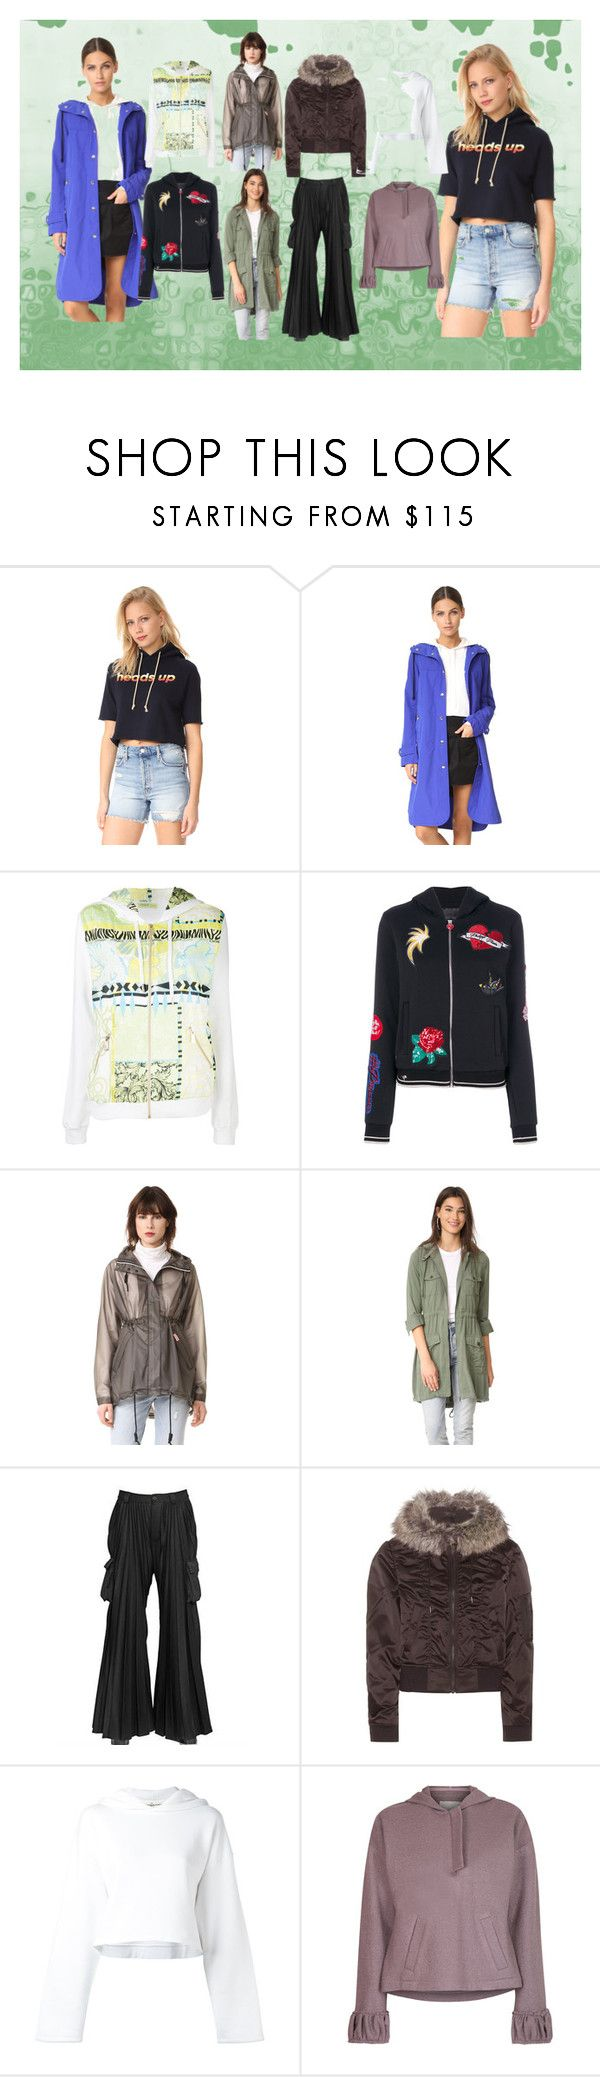 """""""Fall fashion"""" by monica022 ❤ liked on Polyvore featuring Mother, Tim Coppens, Versace, Philipp Plein, Hunter, BB Dakota, Hood by Air, Yeezy by Kanye West, Golden Goose and Lilly Sarti"""